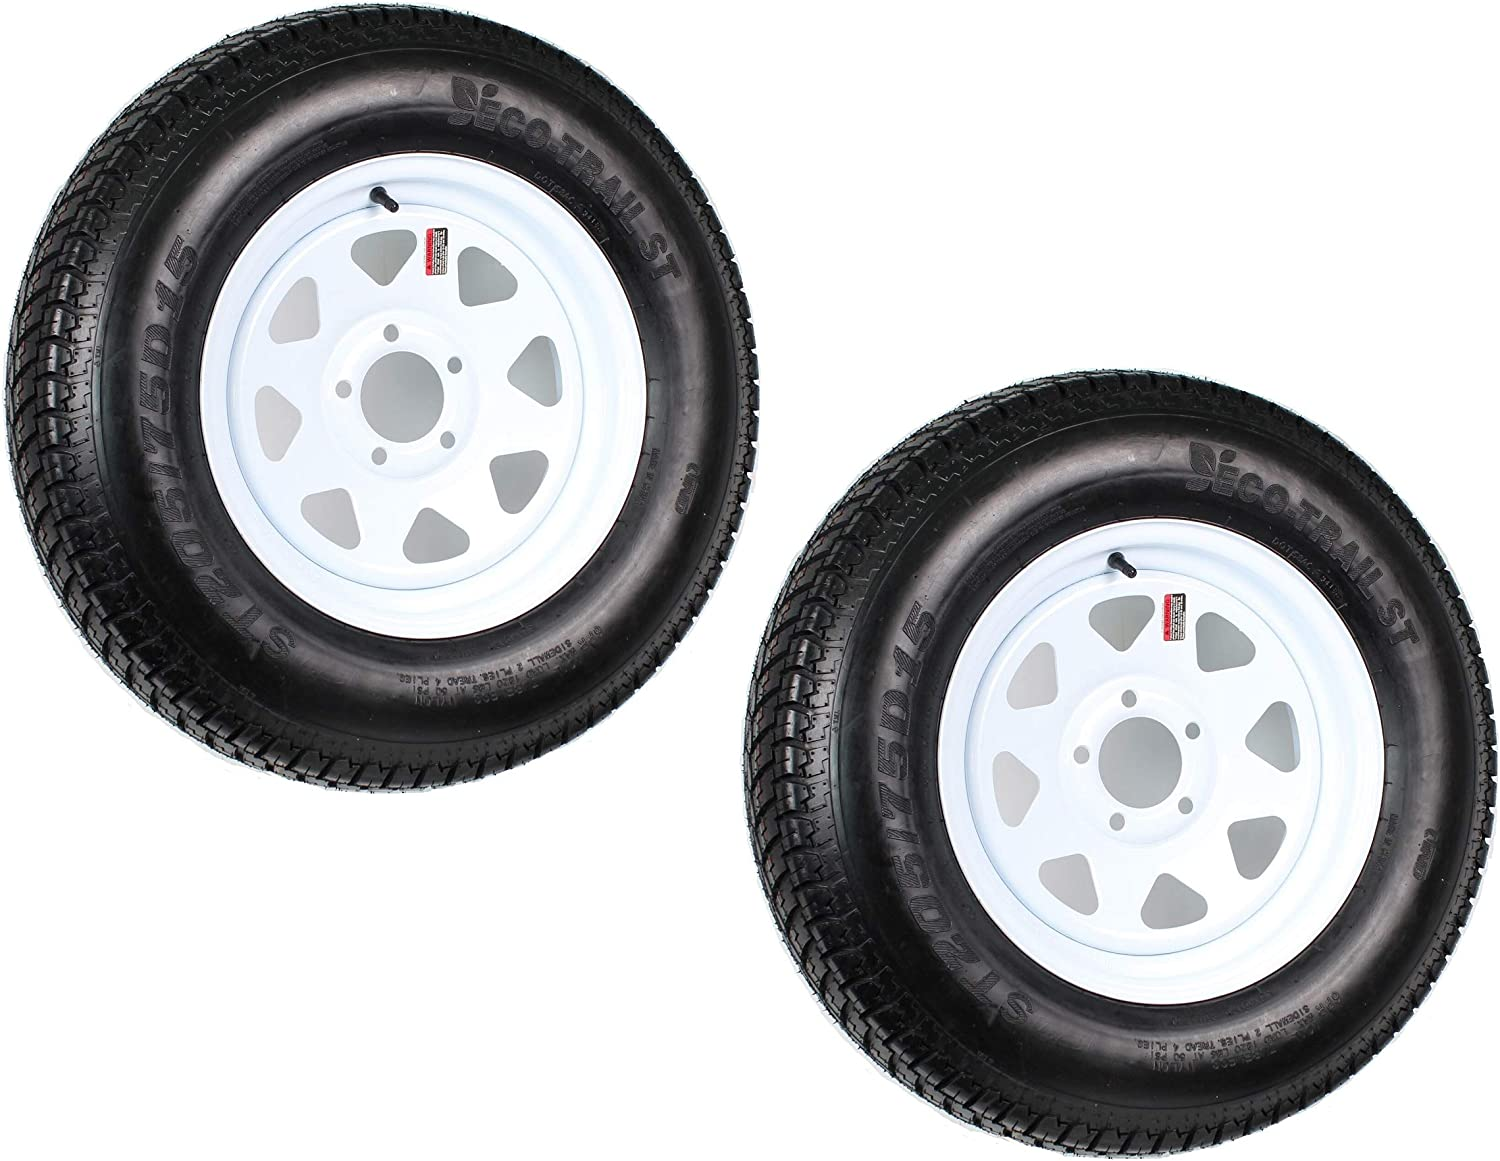 2-Pk Trailer Tire On Rim ST205/75D15 F78 205/75 LRC 5 Lug White Spoke Wheel